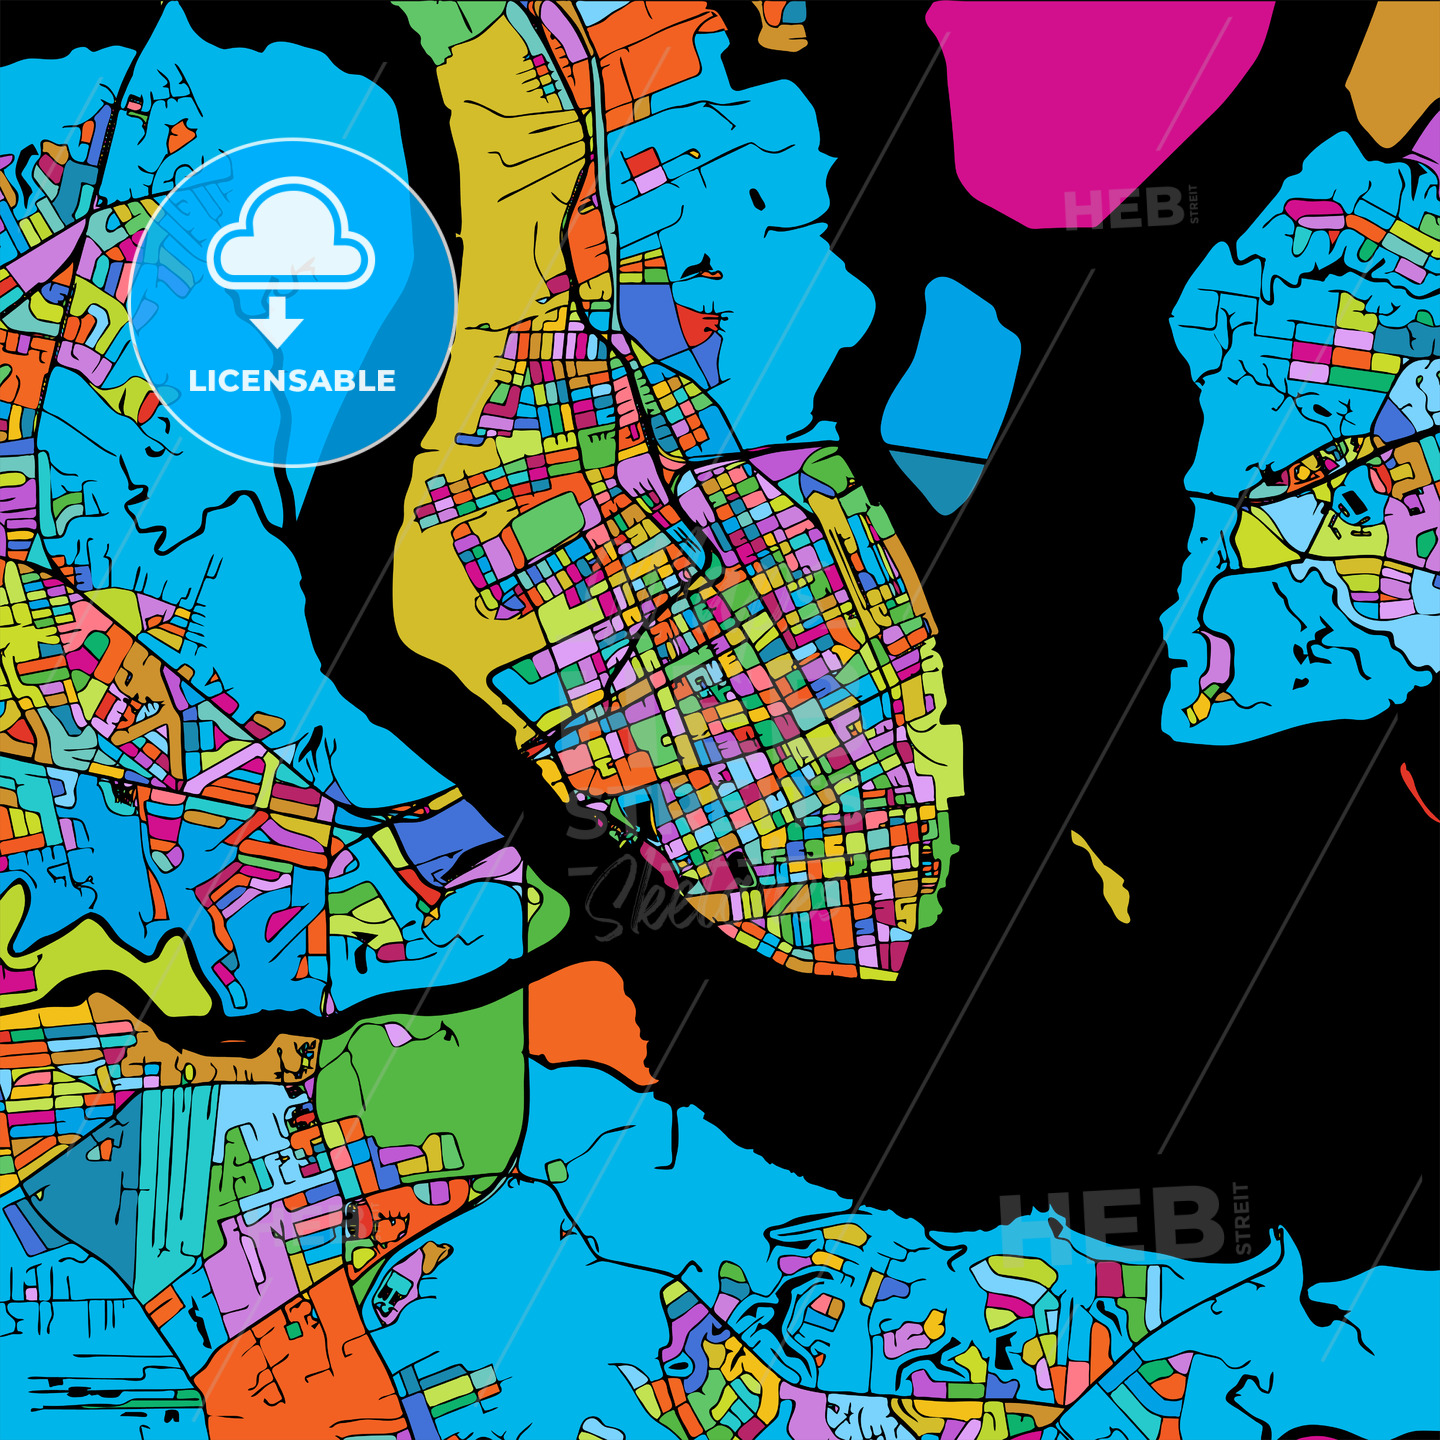 Charleston Colorful Vector Map on Black - HEBSTREIT's Sketches